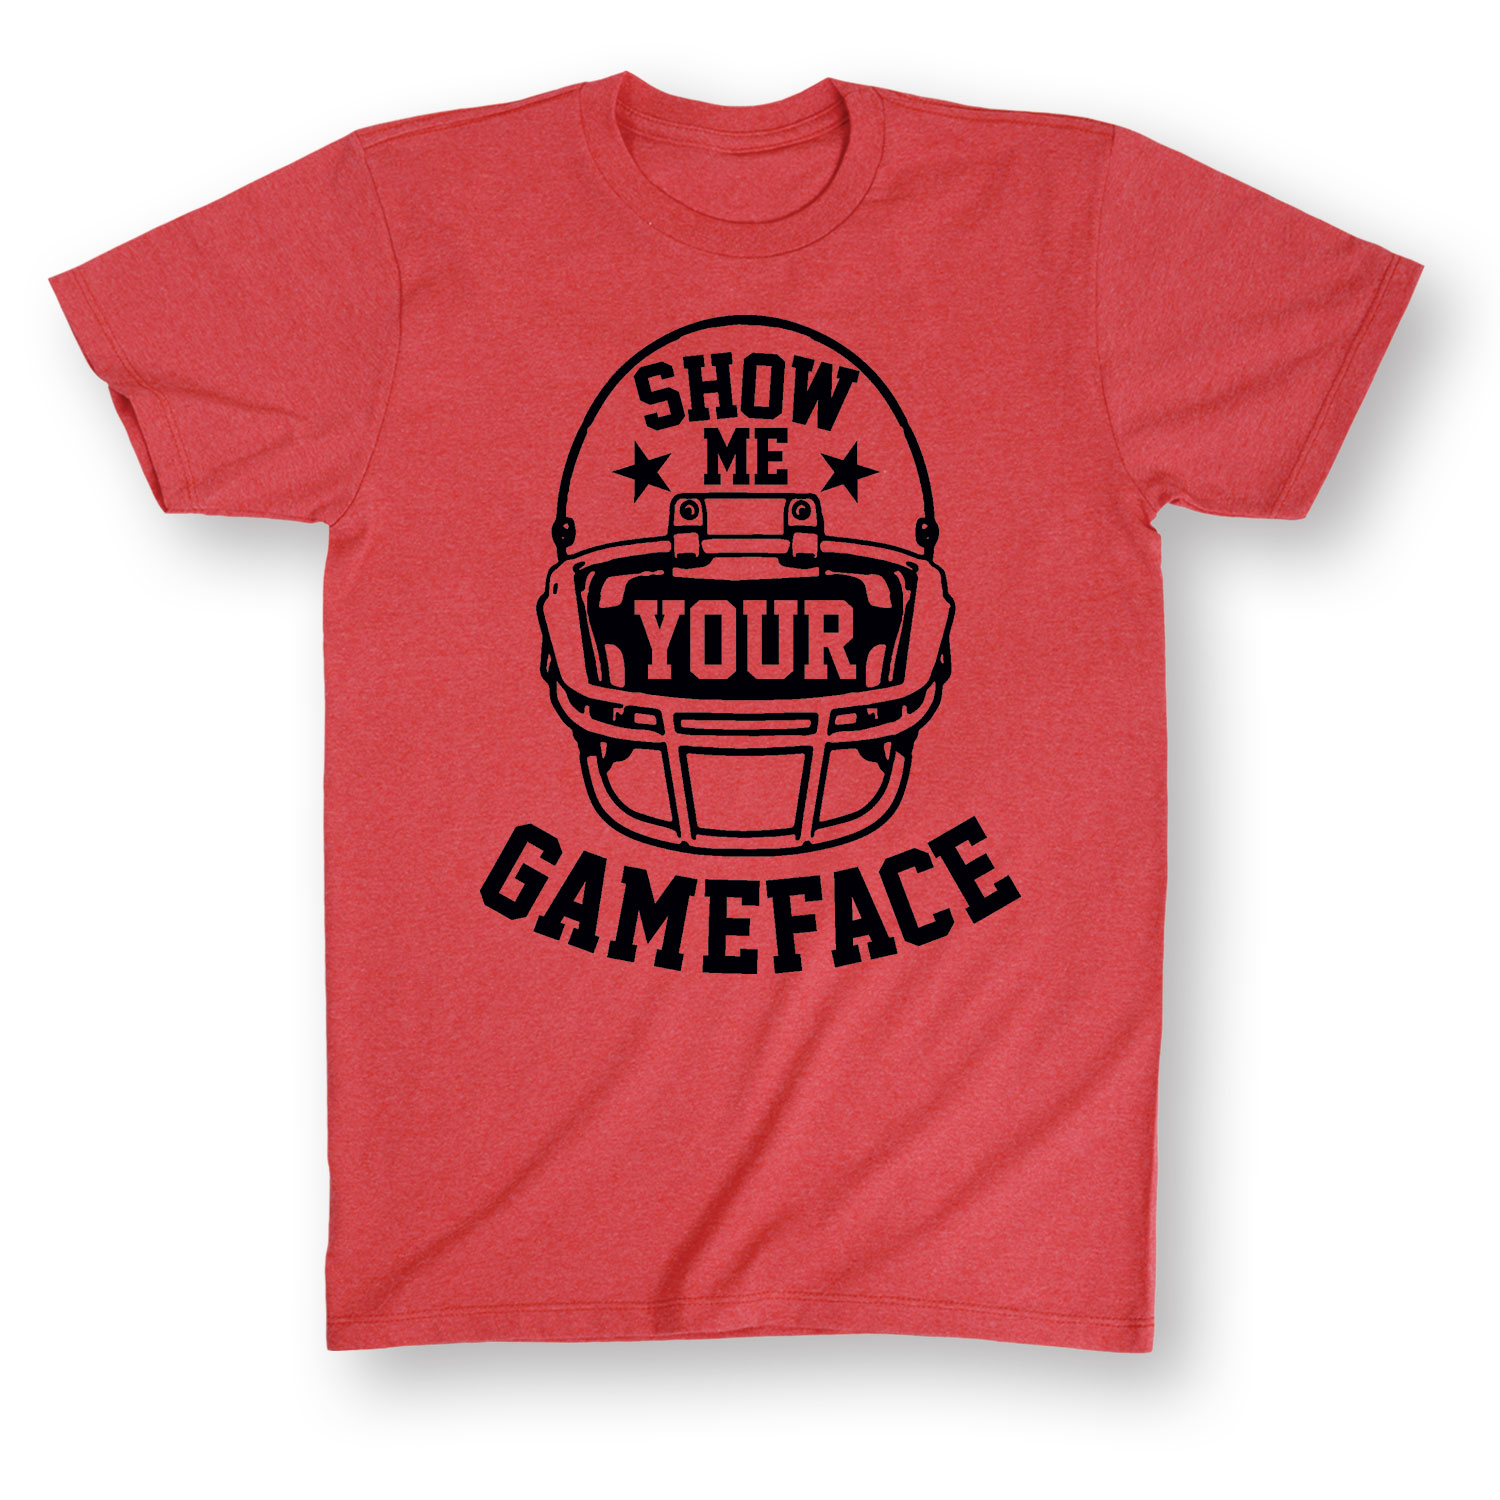 Show Me Gameface-ADULT SHORT SLEEVE TEE